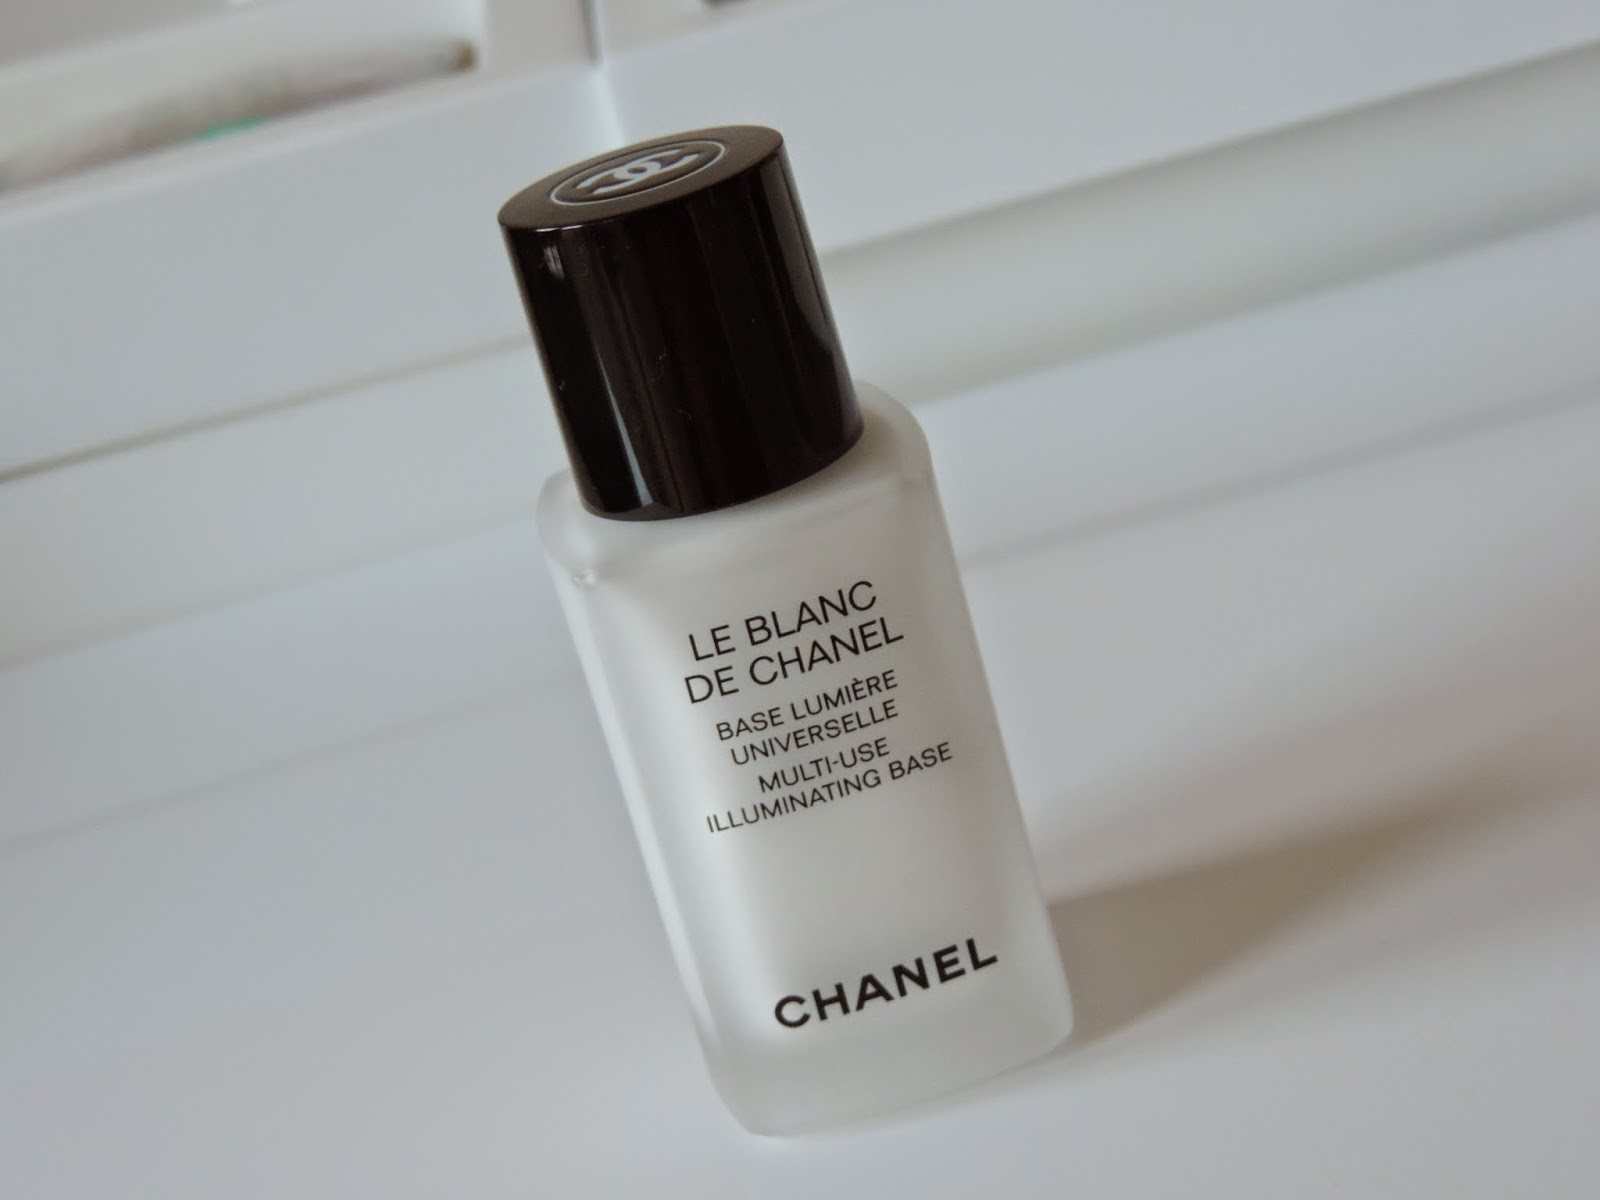 Le Blanc De Chanel Multi Use Illuminating Base